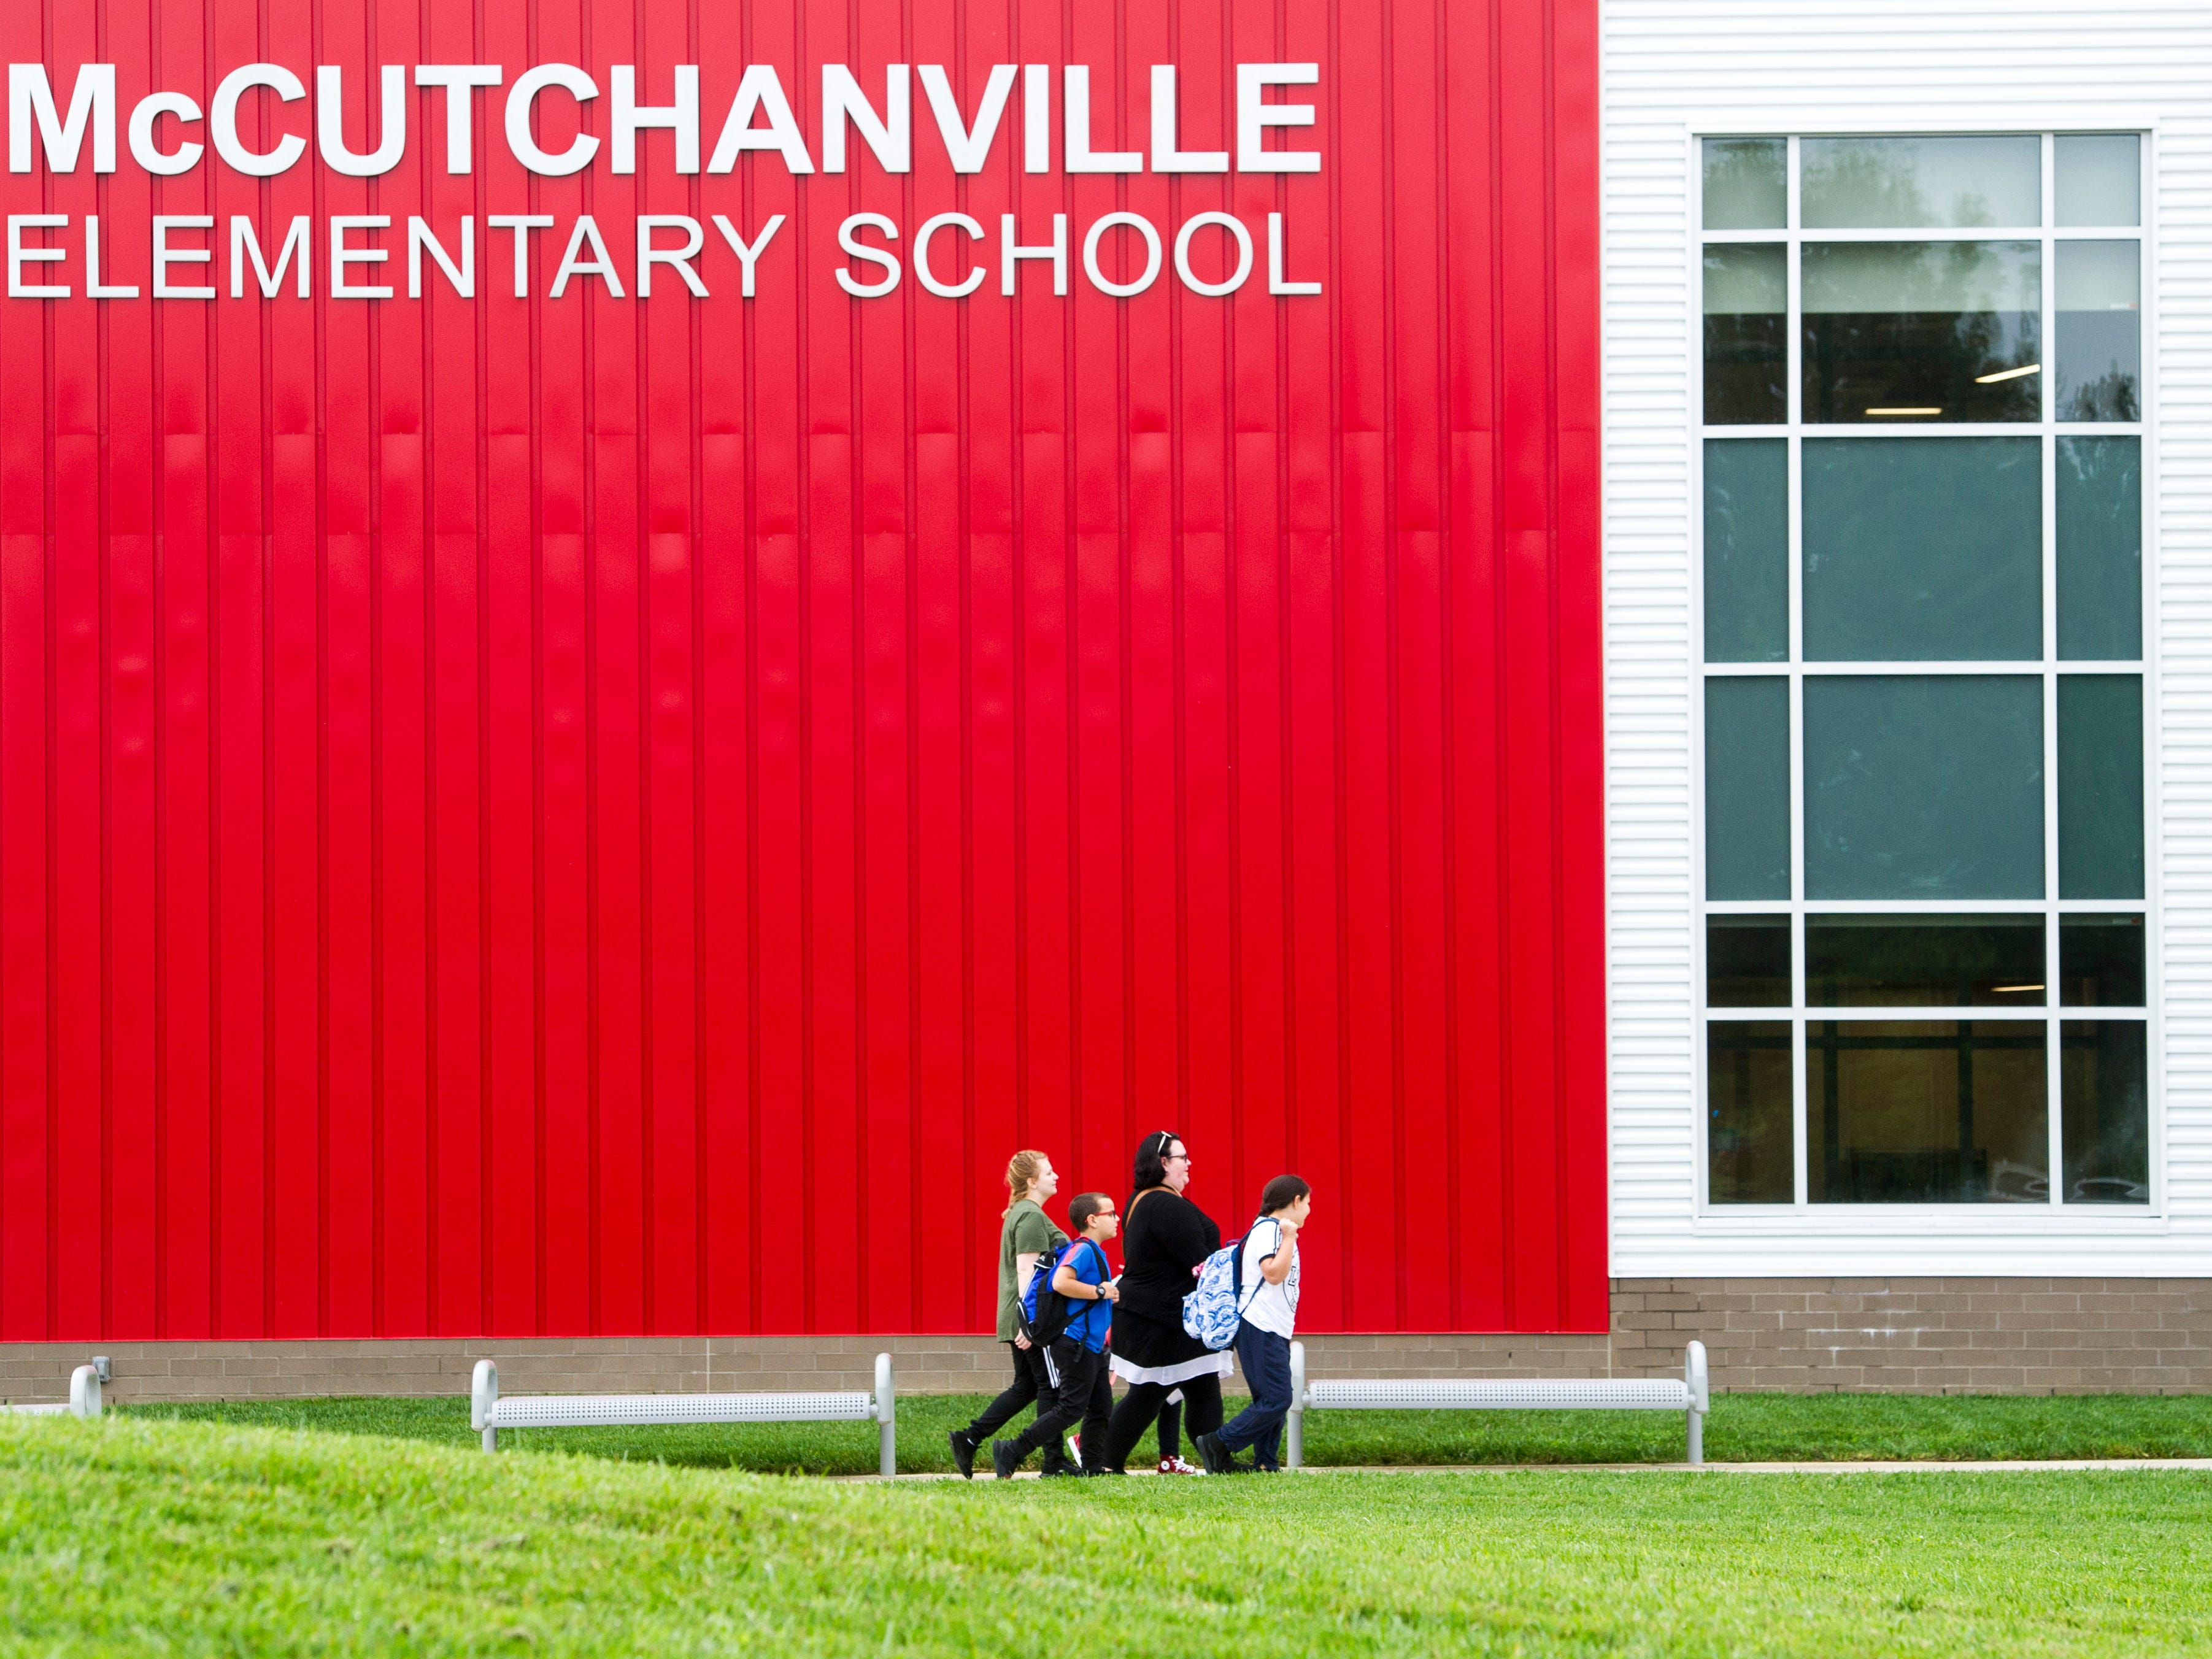 Students arrive at the new McCutchanville Elementary school for the first day of school Wednesday, August 8, 2018.